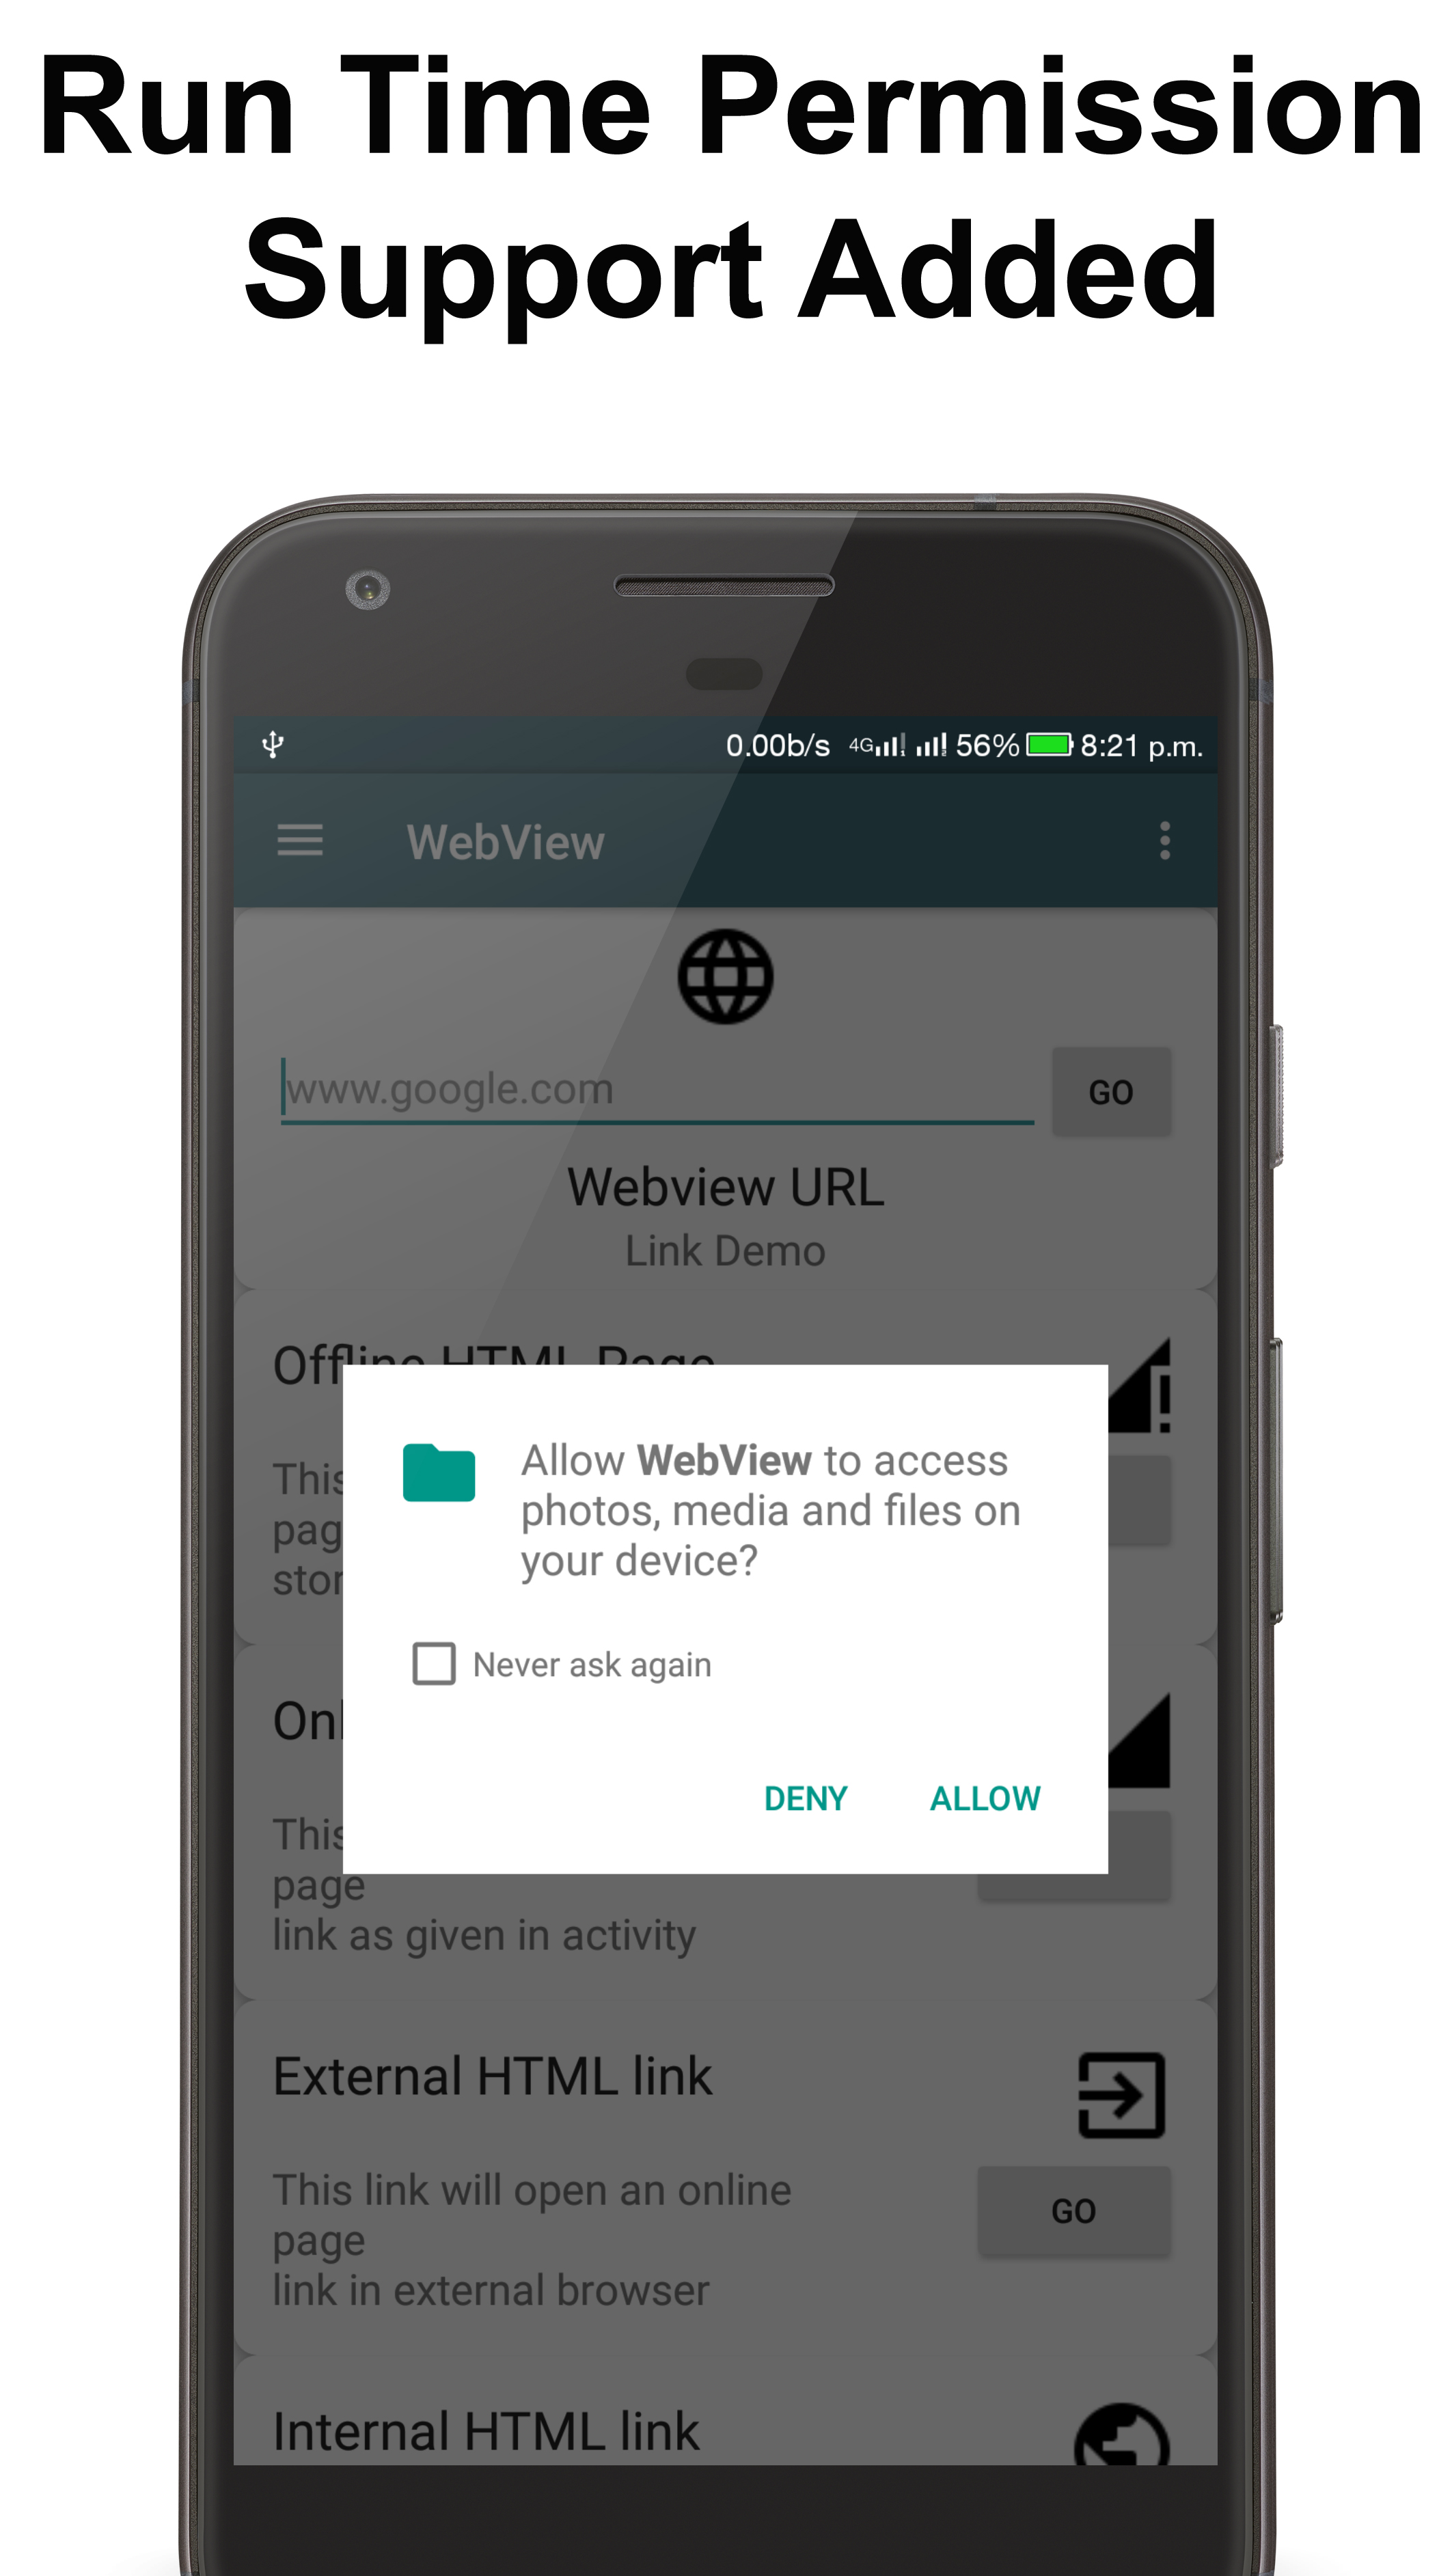 All - In - One : WebView App for Android